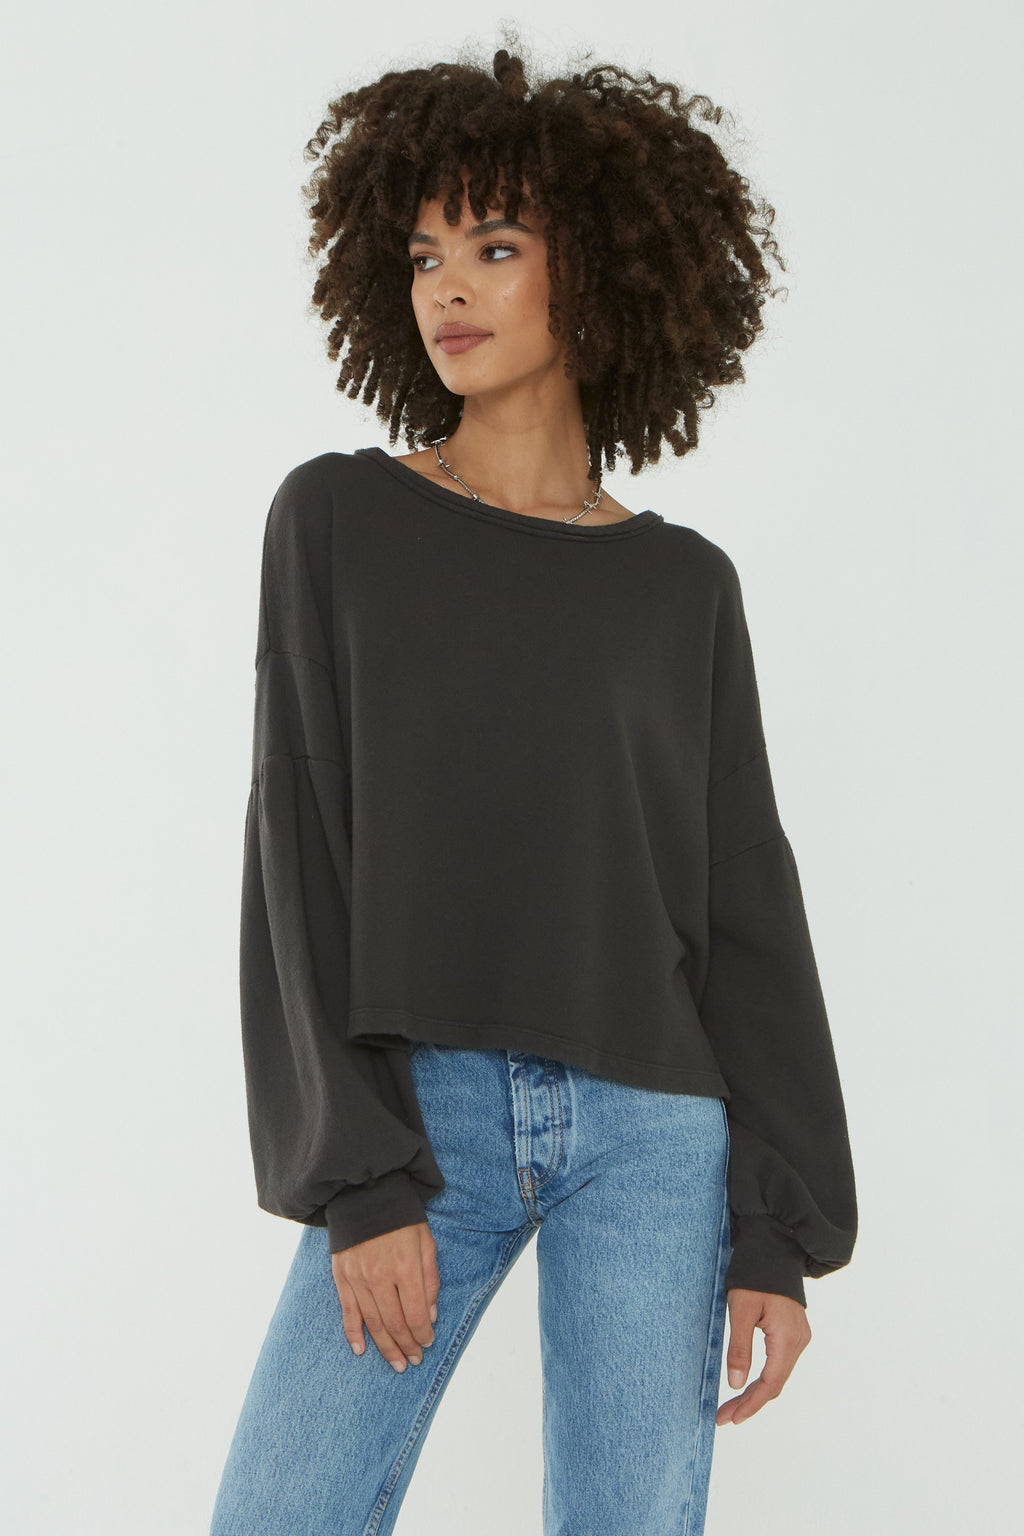 All That Sweatshirt-Distressed Black